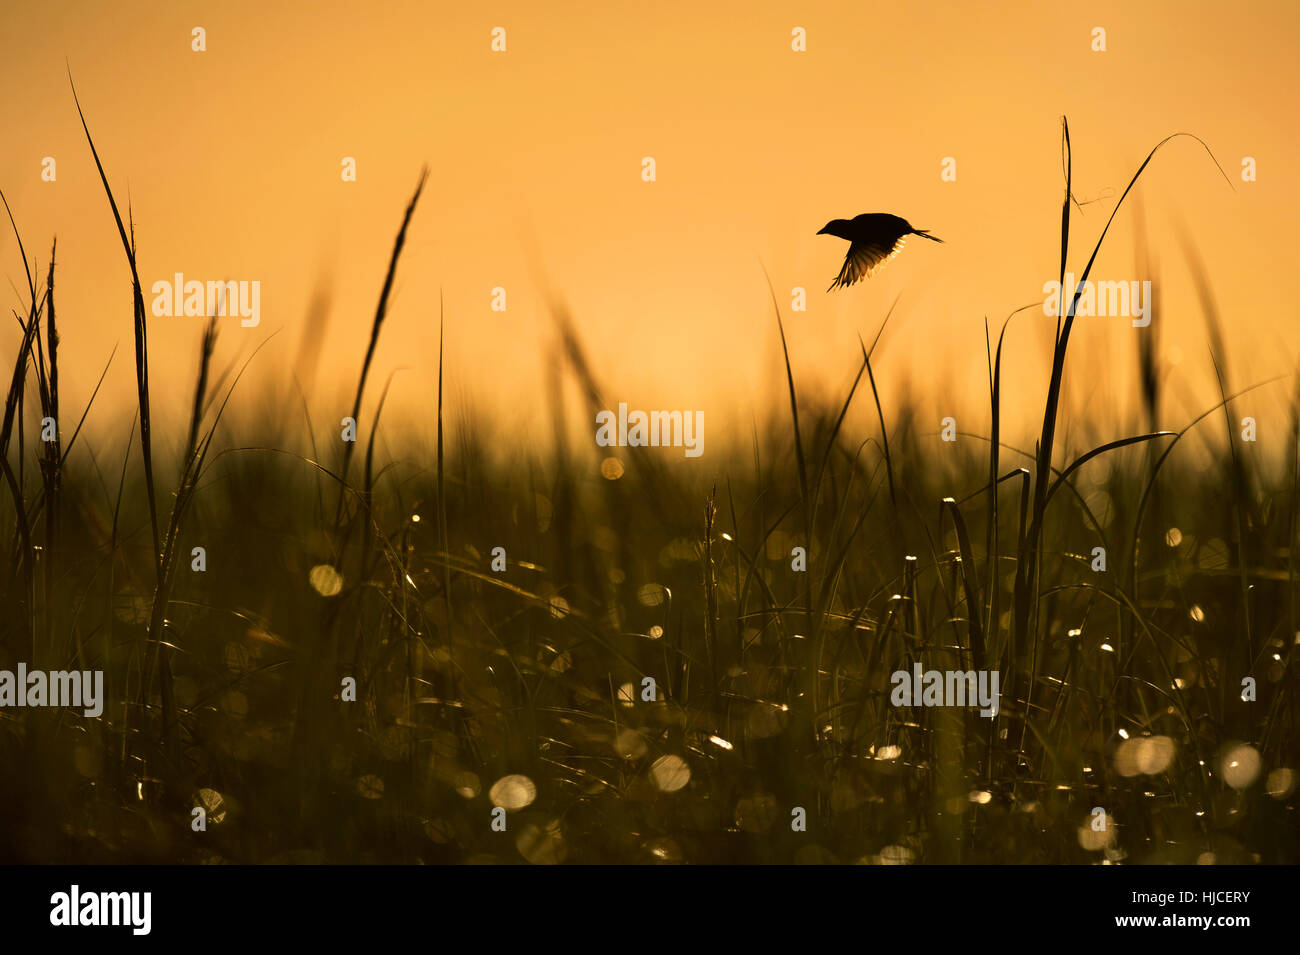 A Seaside Sparrow takes flight early one morning in a field of tall marsh grass with an orange sky background. Stock Photo